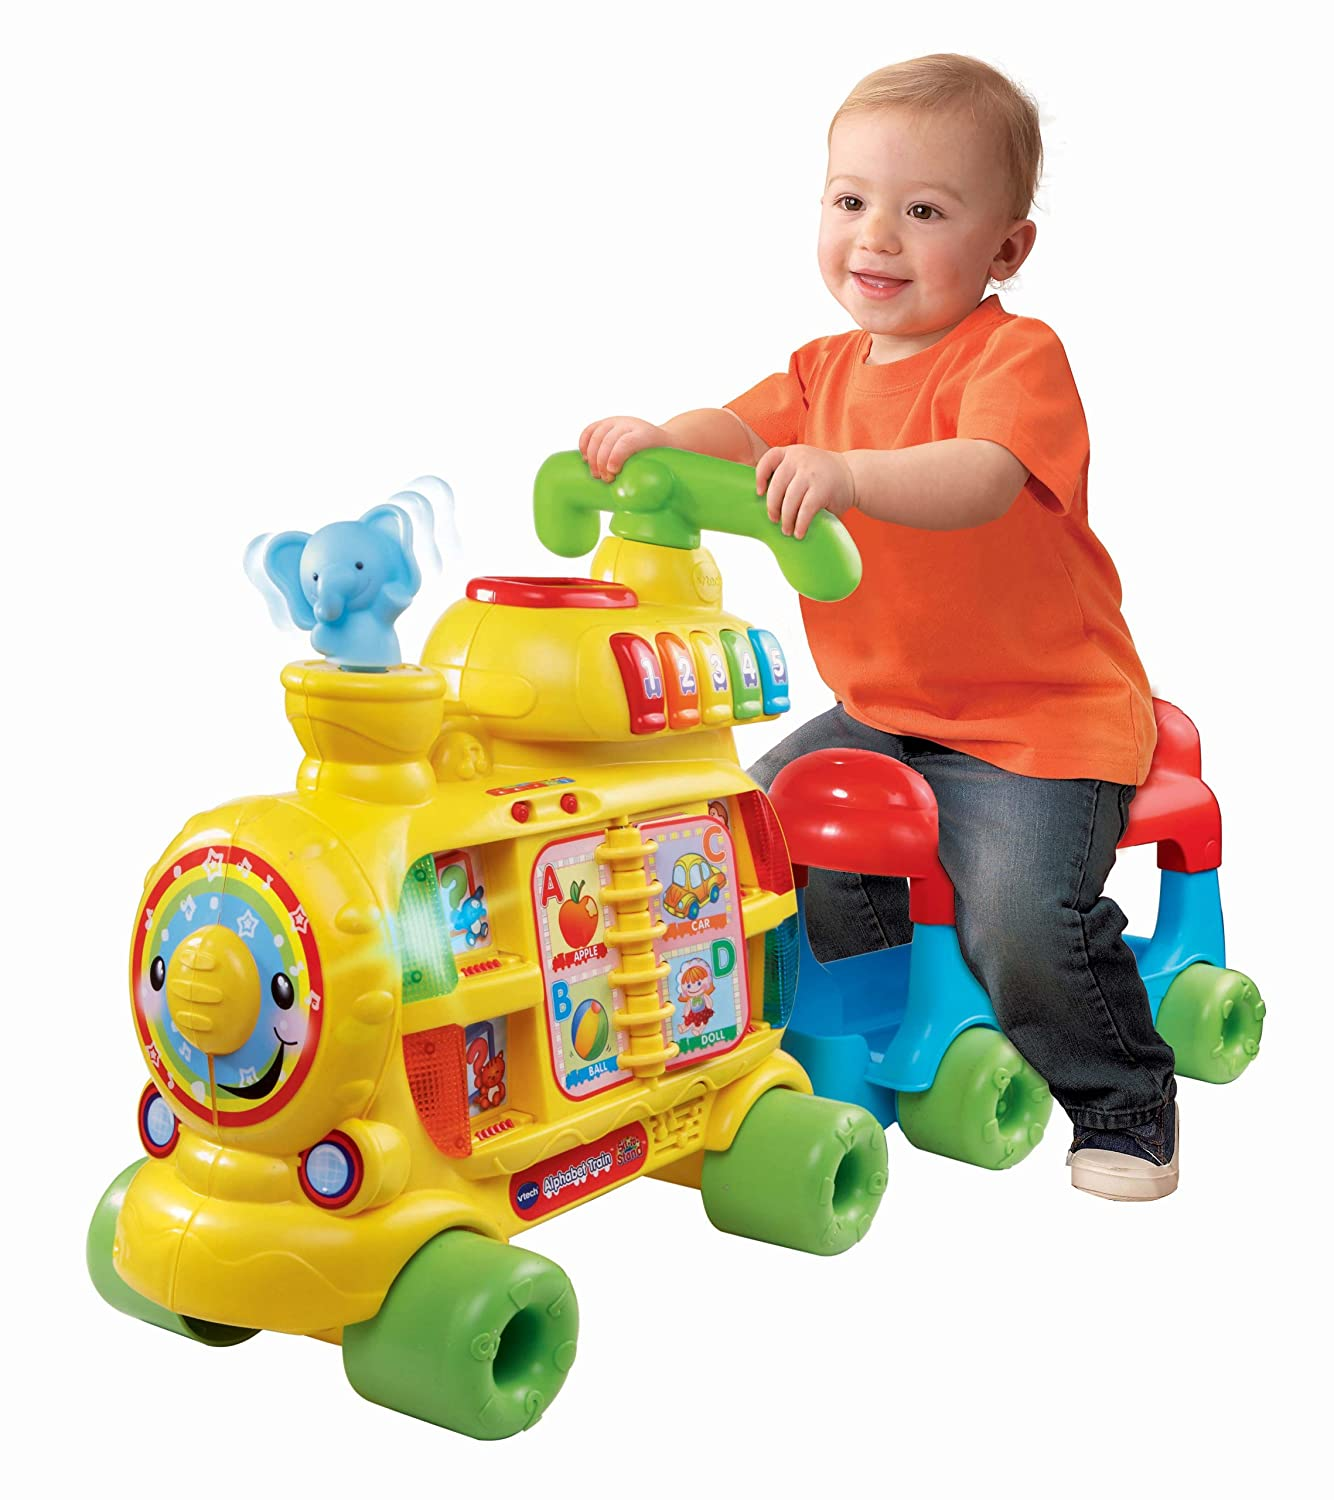 walker ride on train alphabet vtech sit to stand new learn toy for kids toddler ebay. Black Bedroom Furniture Sets. Home Design Ideas